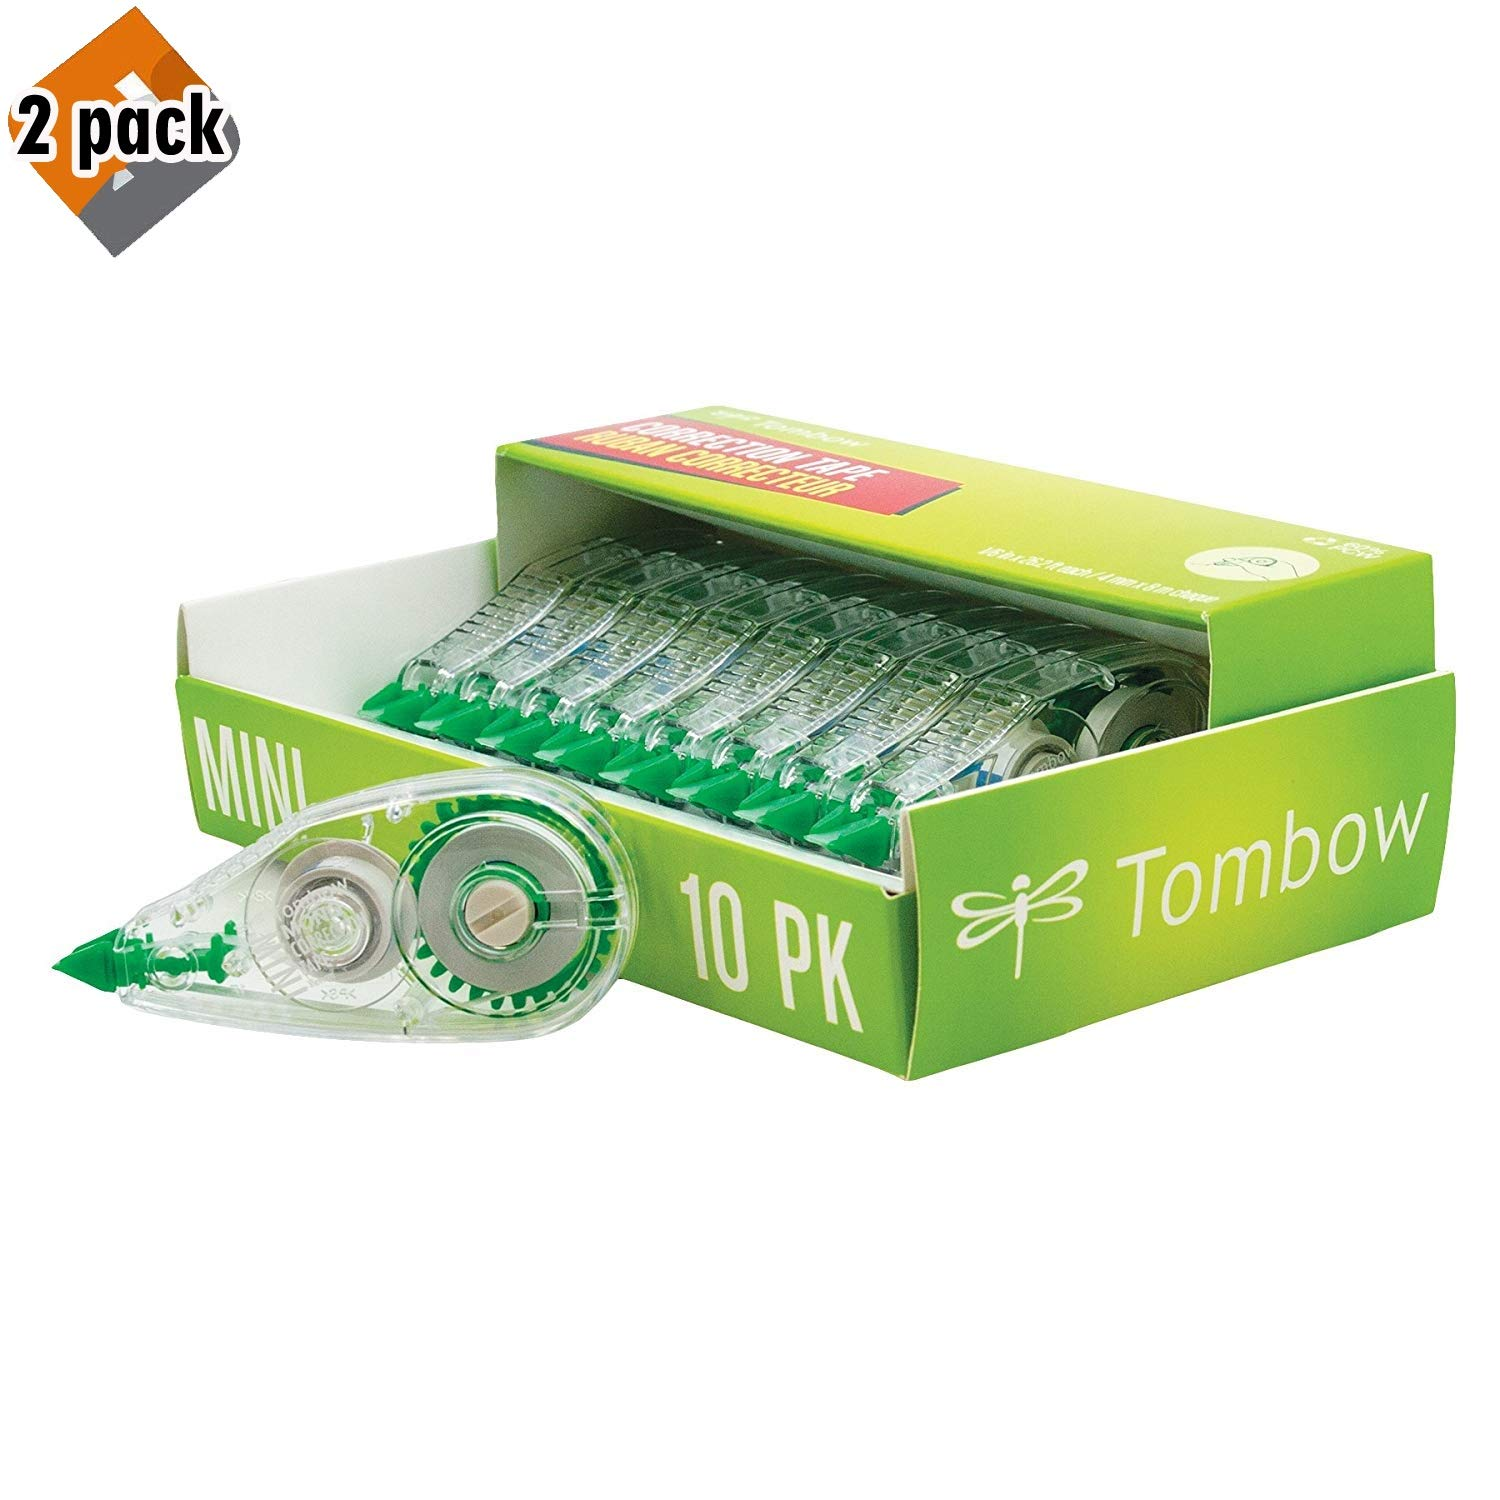 Tombow 68722 MONO Mini Correction Tape, 10-Pack. Easy to Use Applicator for Instant Corrections, 2 Pack